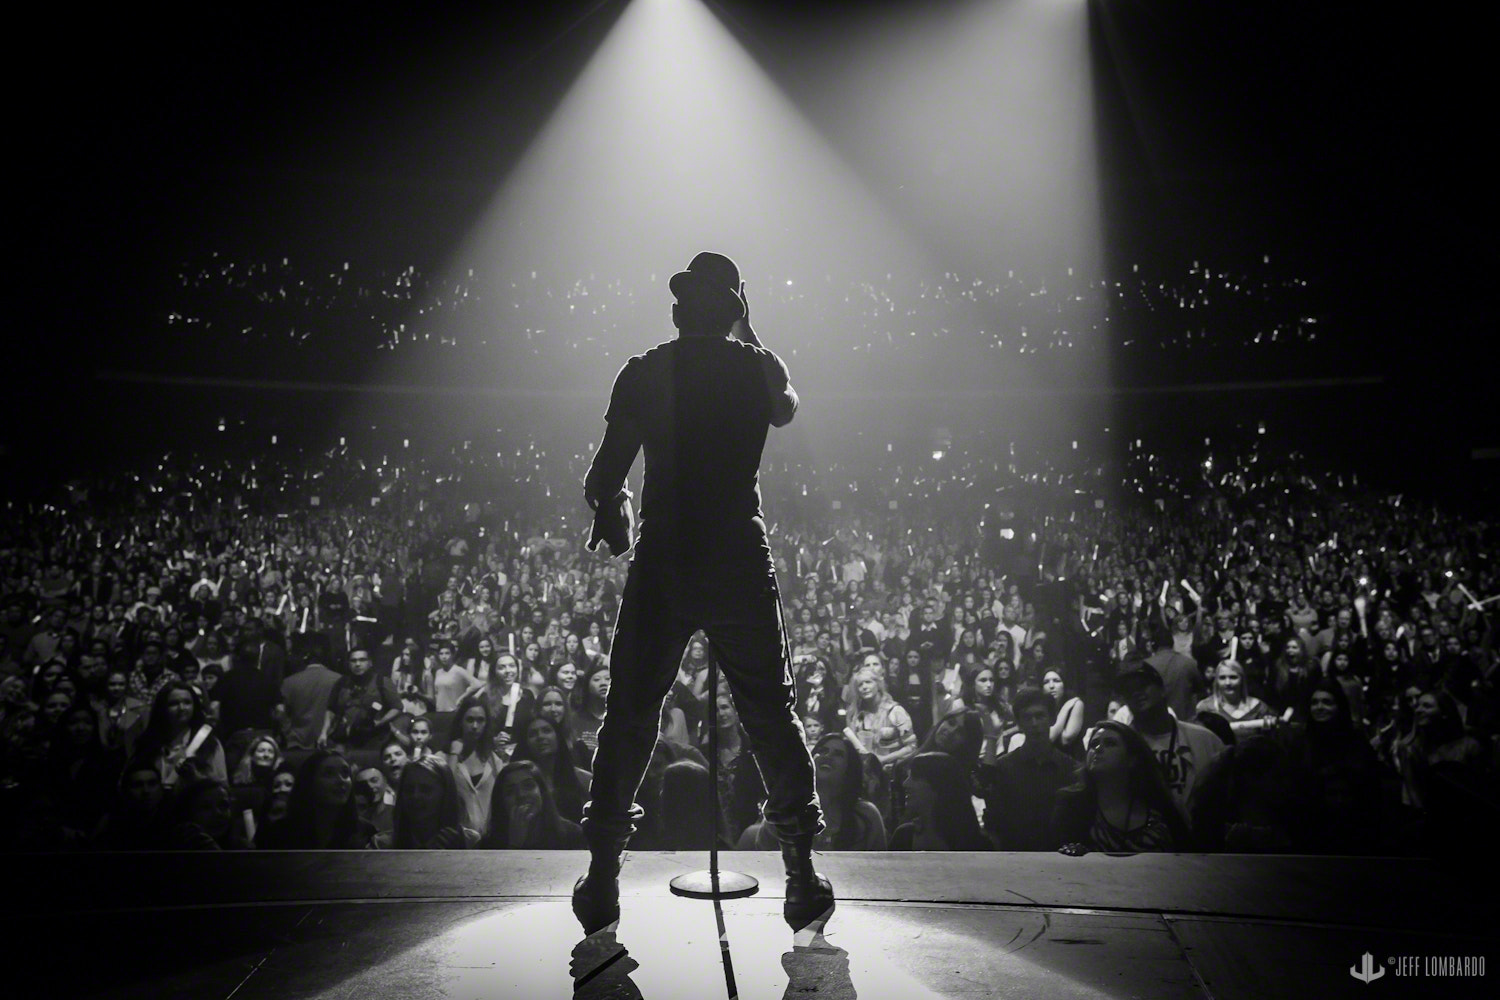 Photograph Ne-Yo Performing LIVE at Jingleball in Los Angeles, CA by Jeff Lombardo on 500px